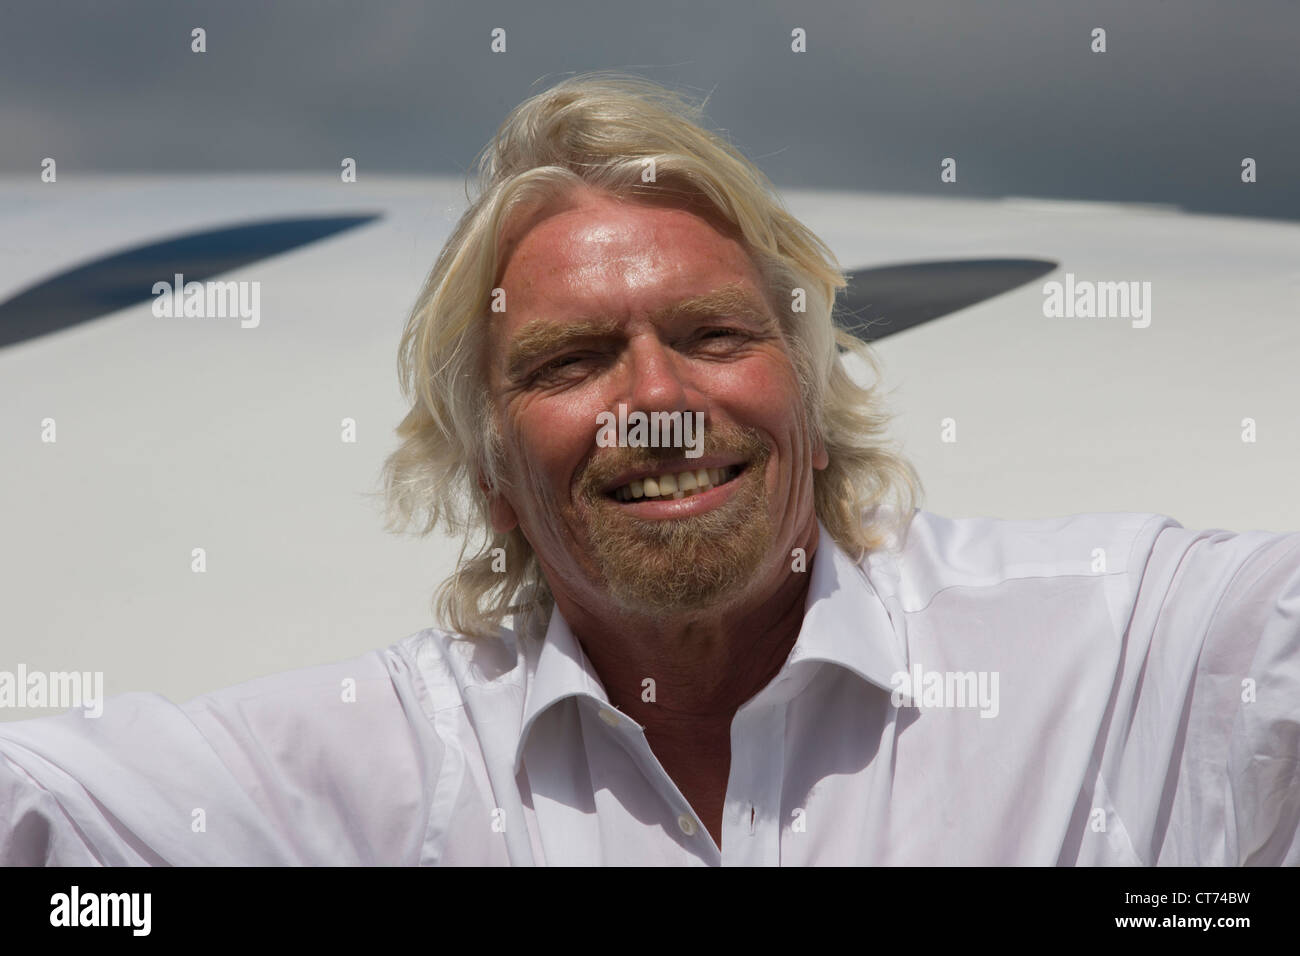 Alongside his SpaceShipTwo vehicle, Richard Branson after Virgin Galactic space tourism presentation at Farnborough - Stock Image